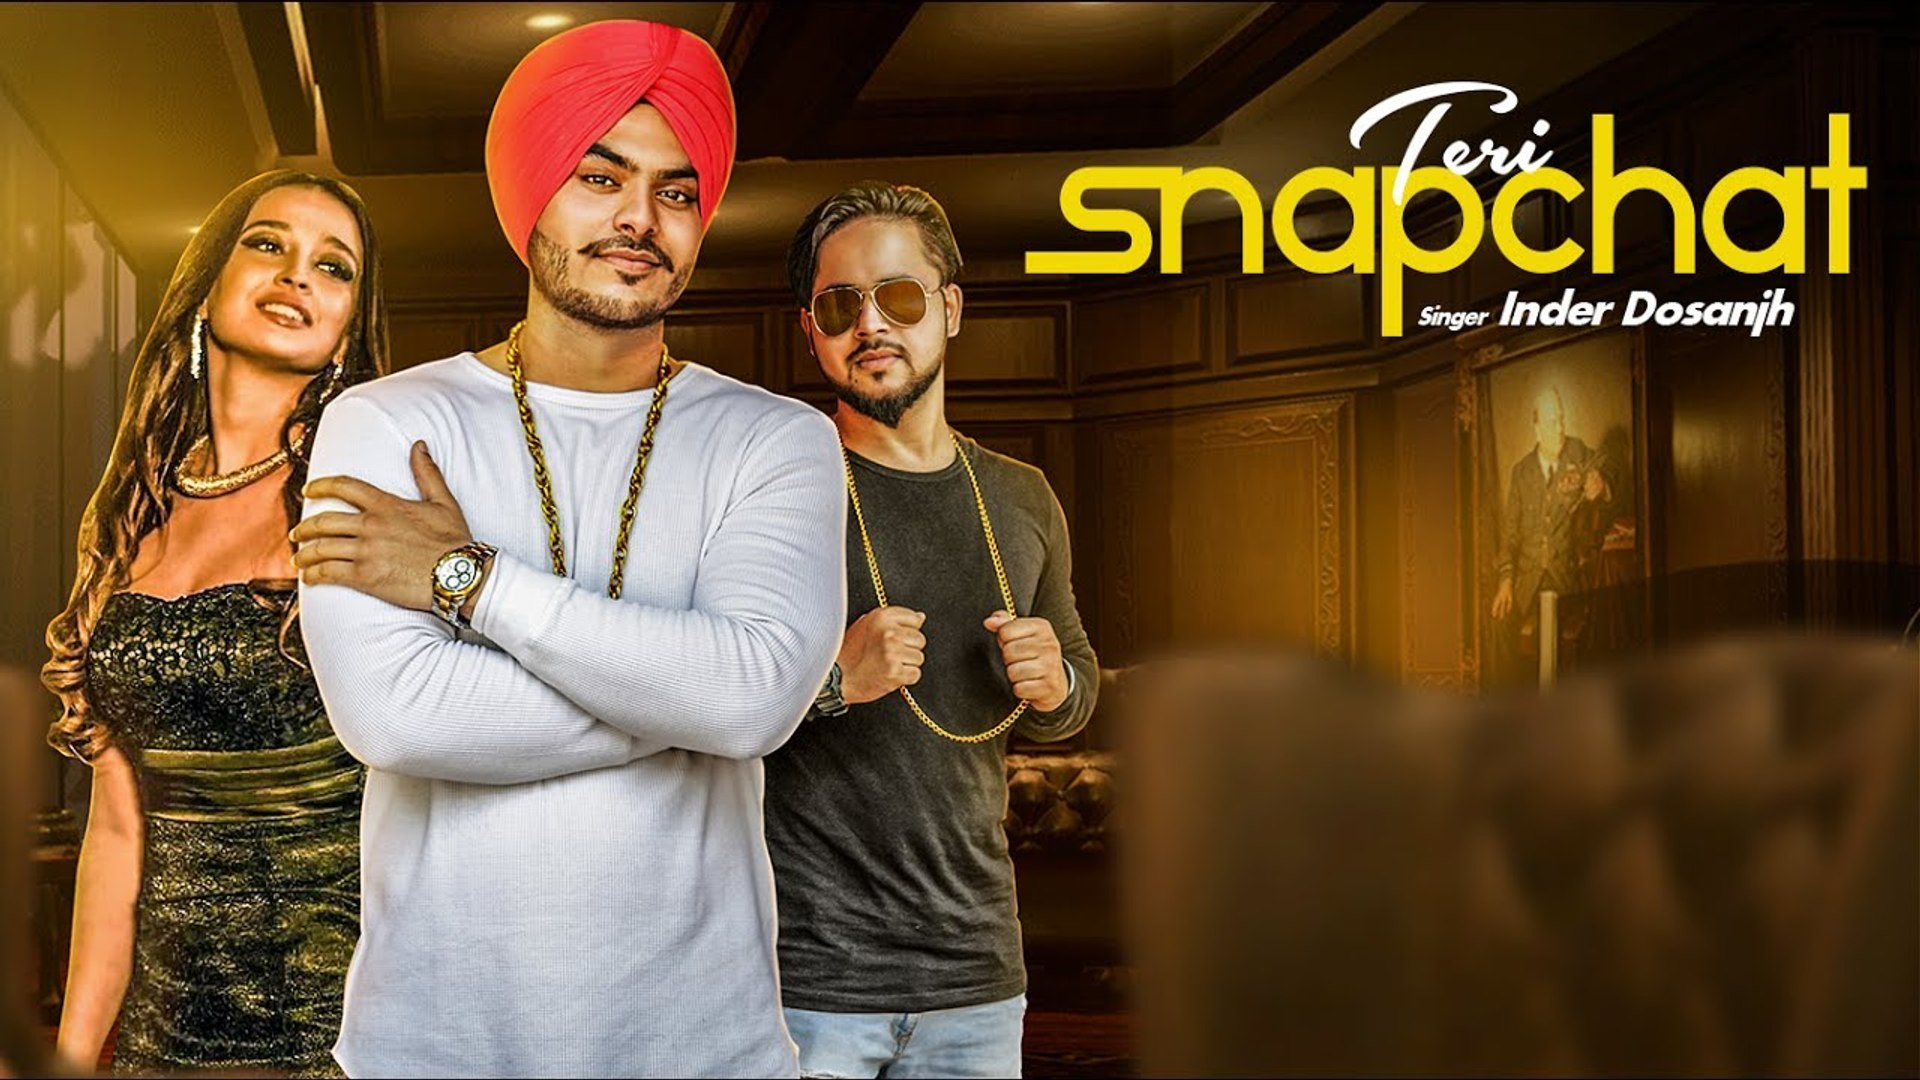 New Punjabi Songs - Inder Dosanjh - HD(Full Song) - Teri Snapchat - Punjabi Song - Kaptaan - Latest